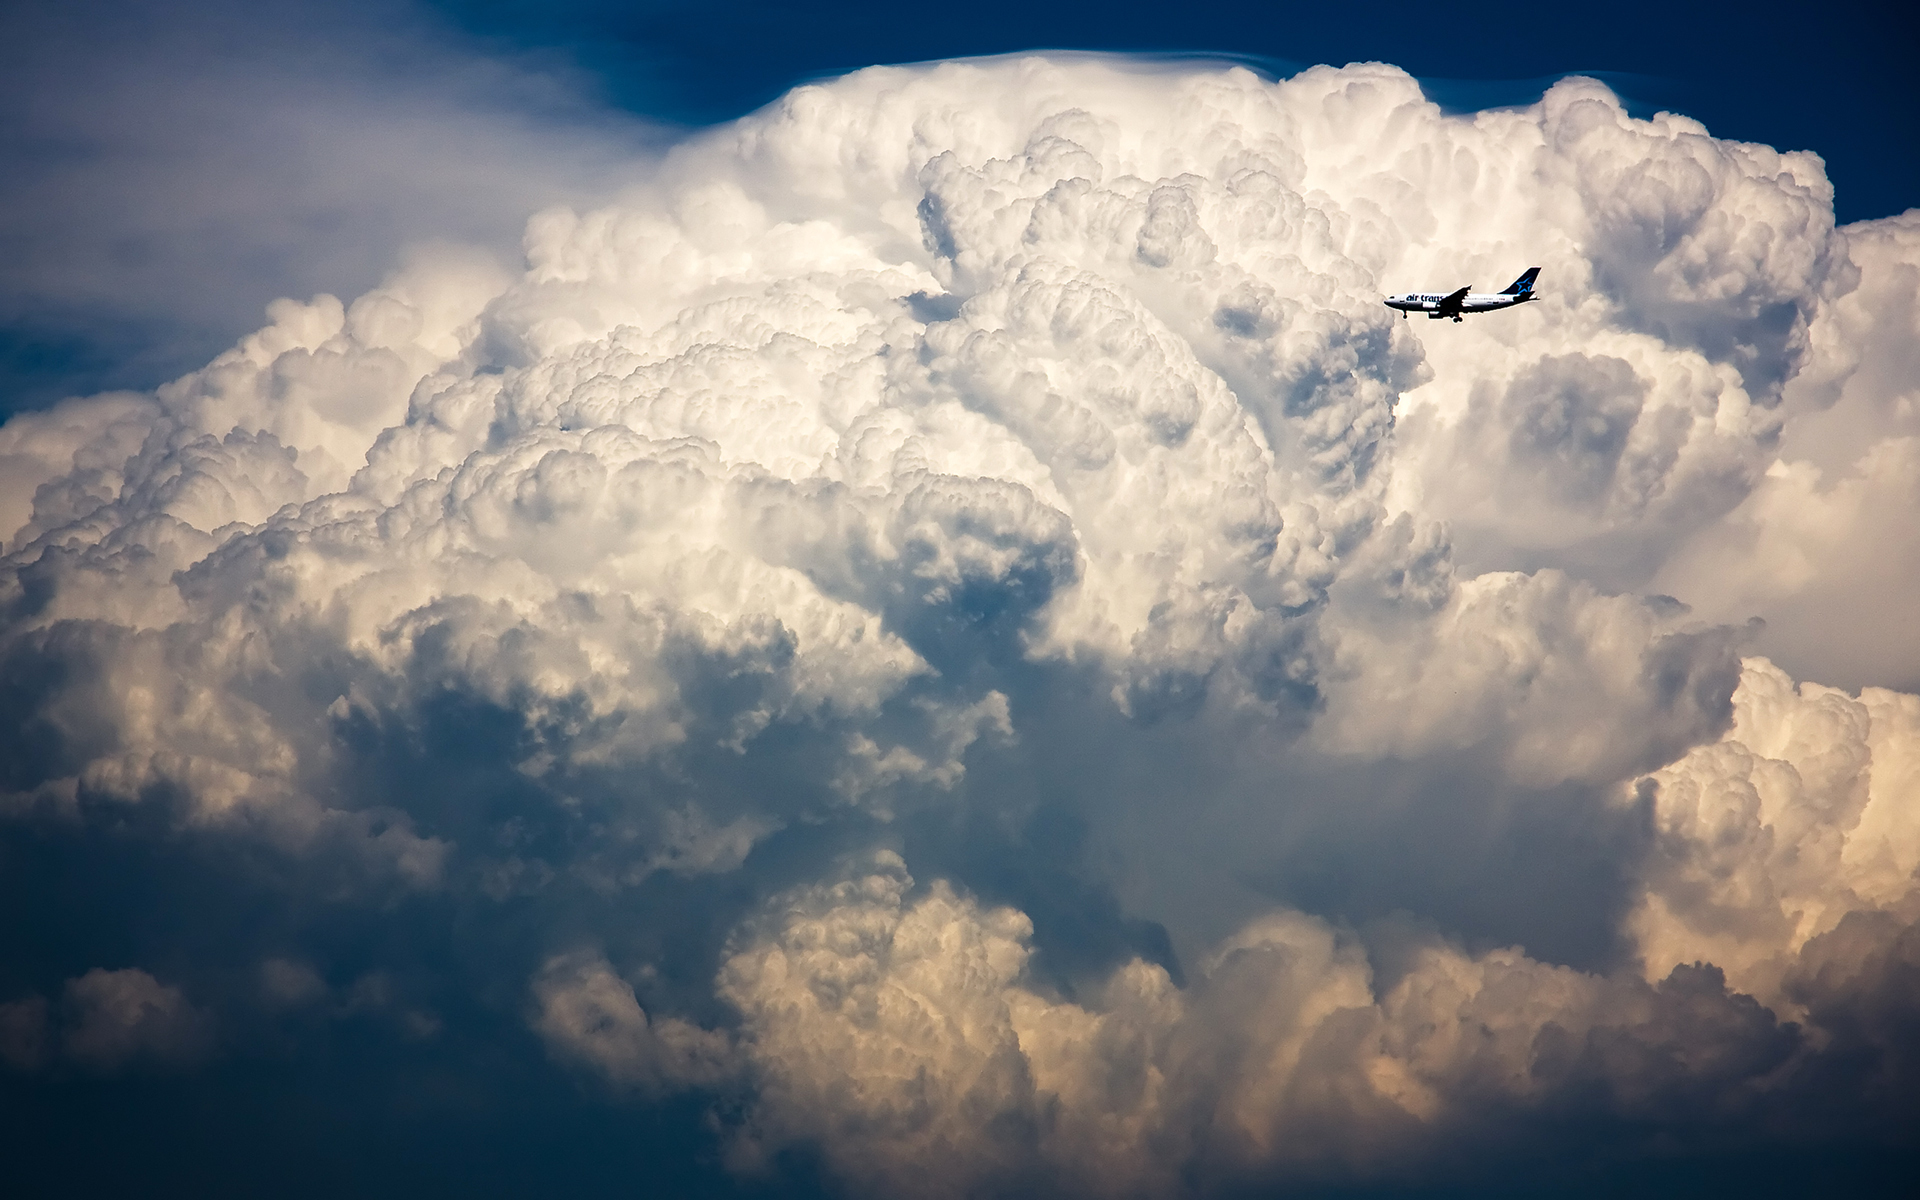 aircraft images in clouds wallpaper - photo #31